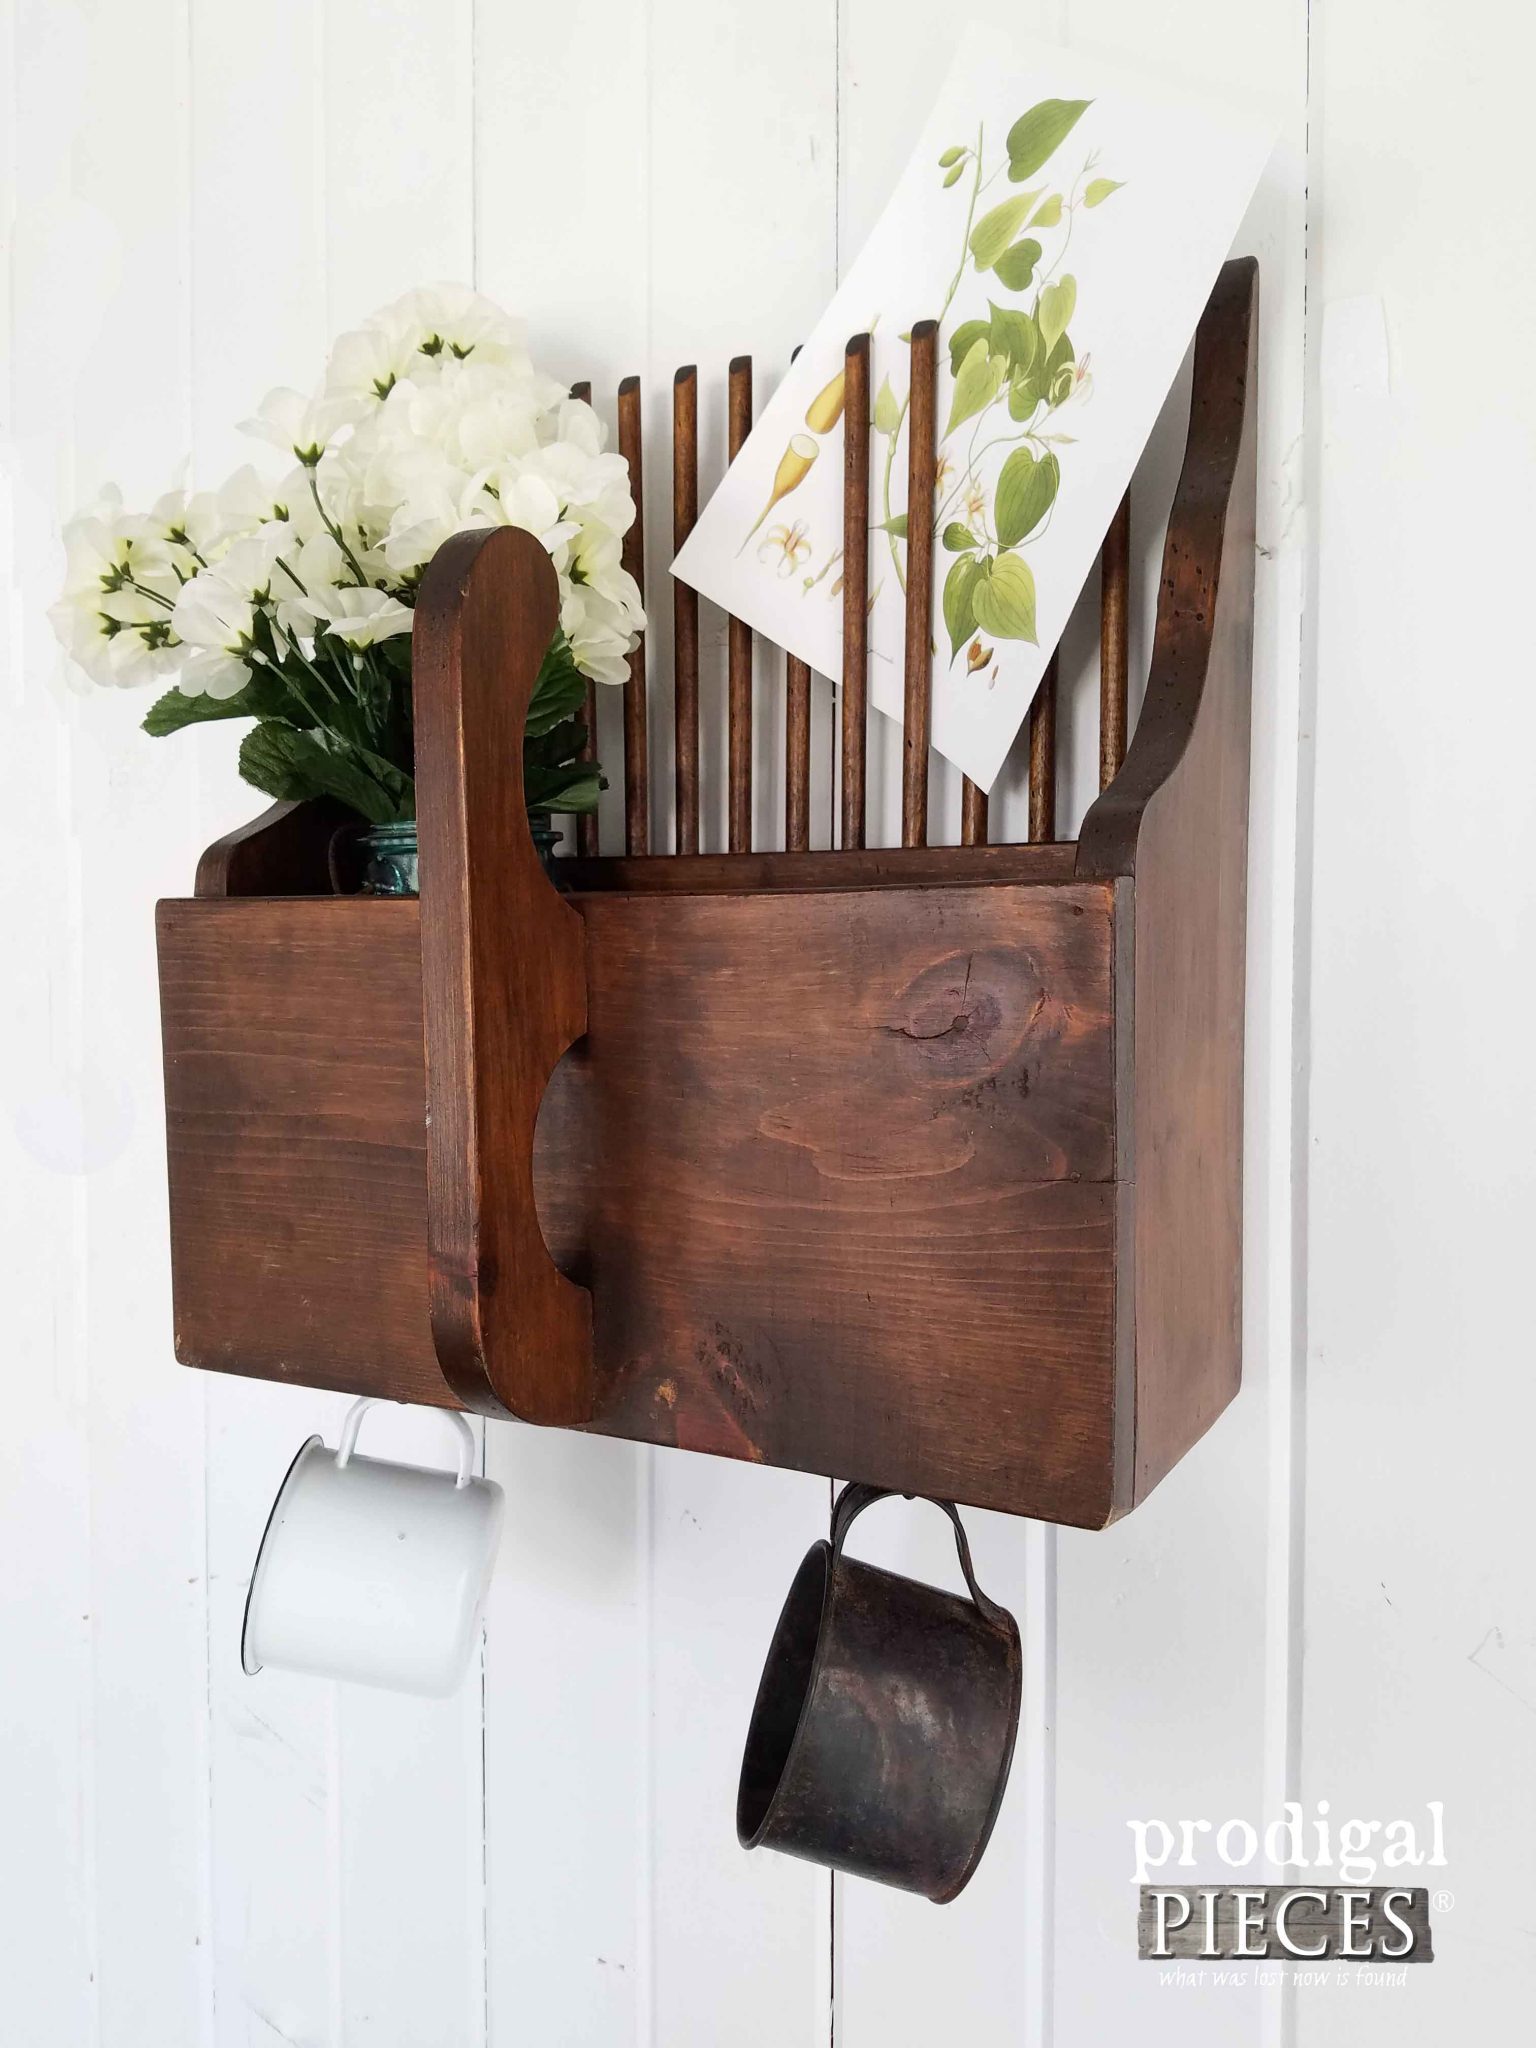 Repurposed Apple Picker Turned Wall Pocket Decor by Prodigal Pieces | prodigalpieces.com